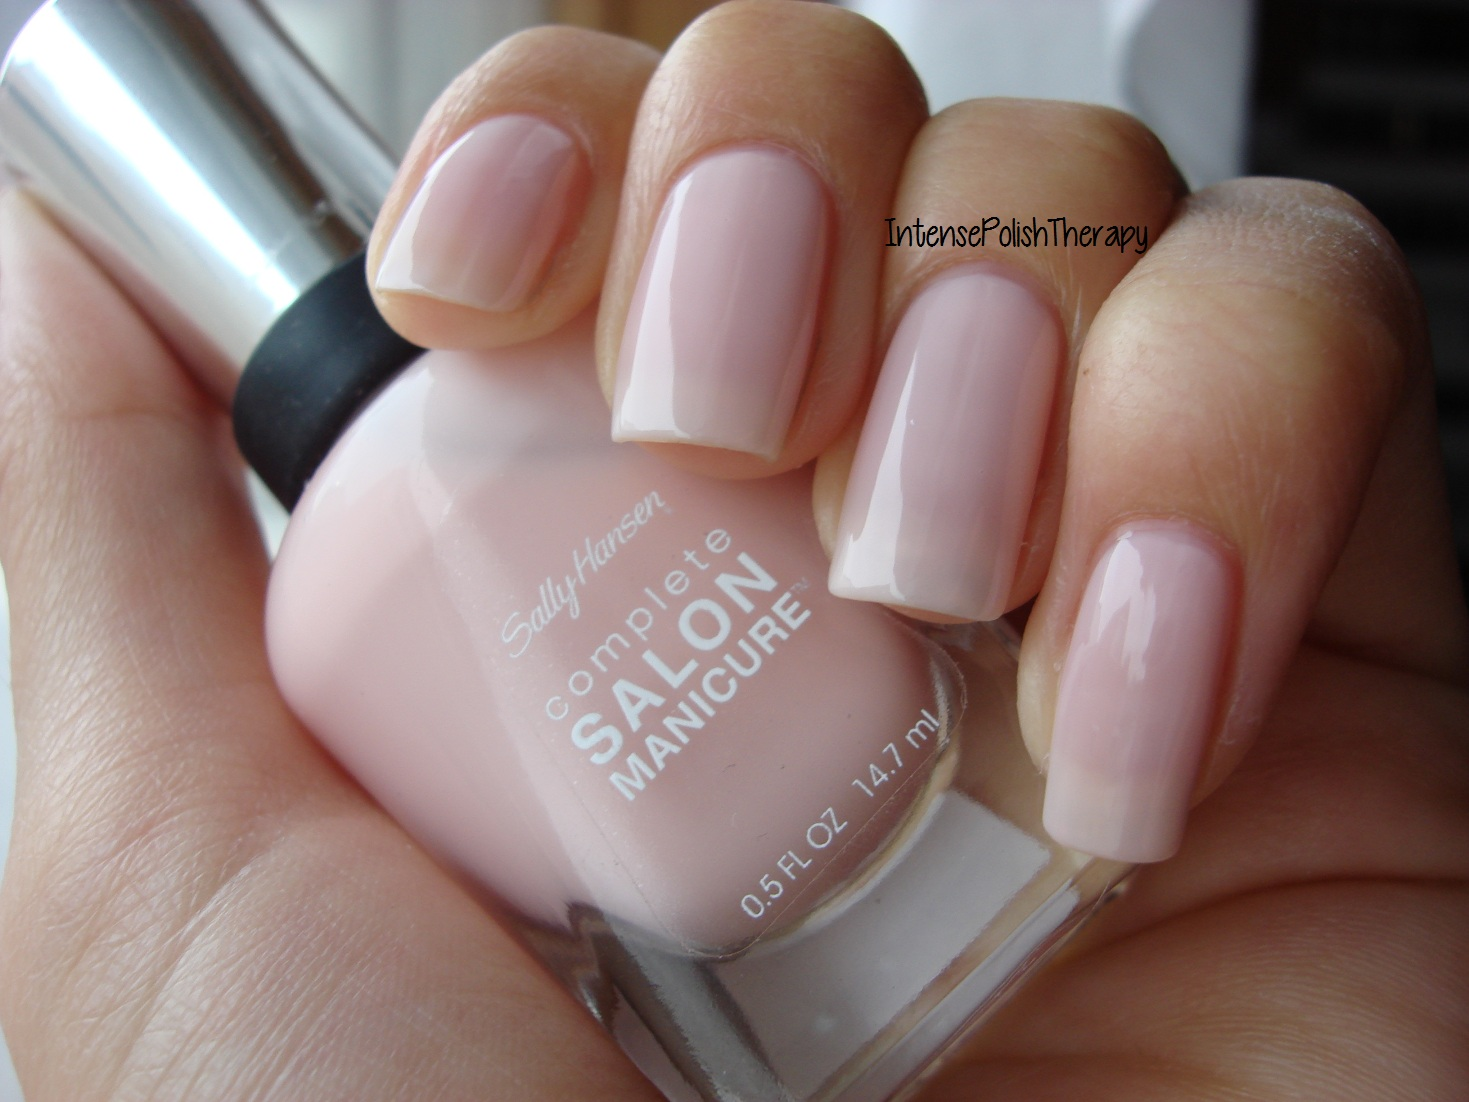 Intense Polish Therapy Sally Hansen Complete Salon